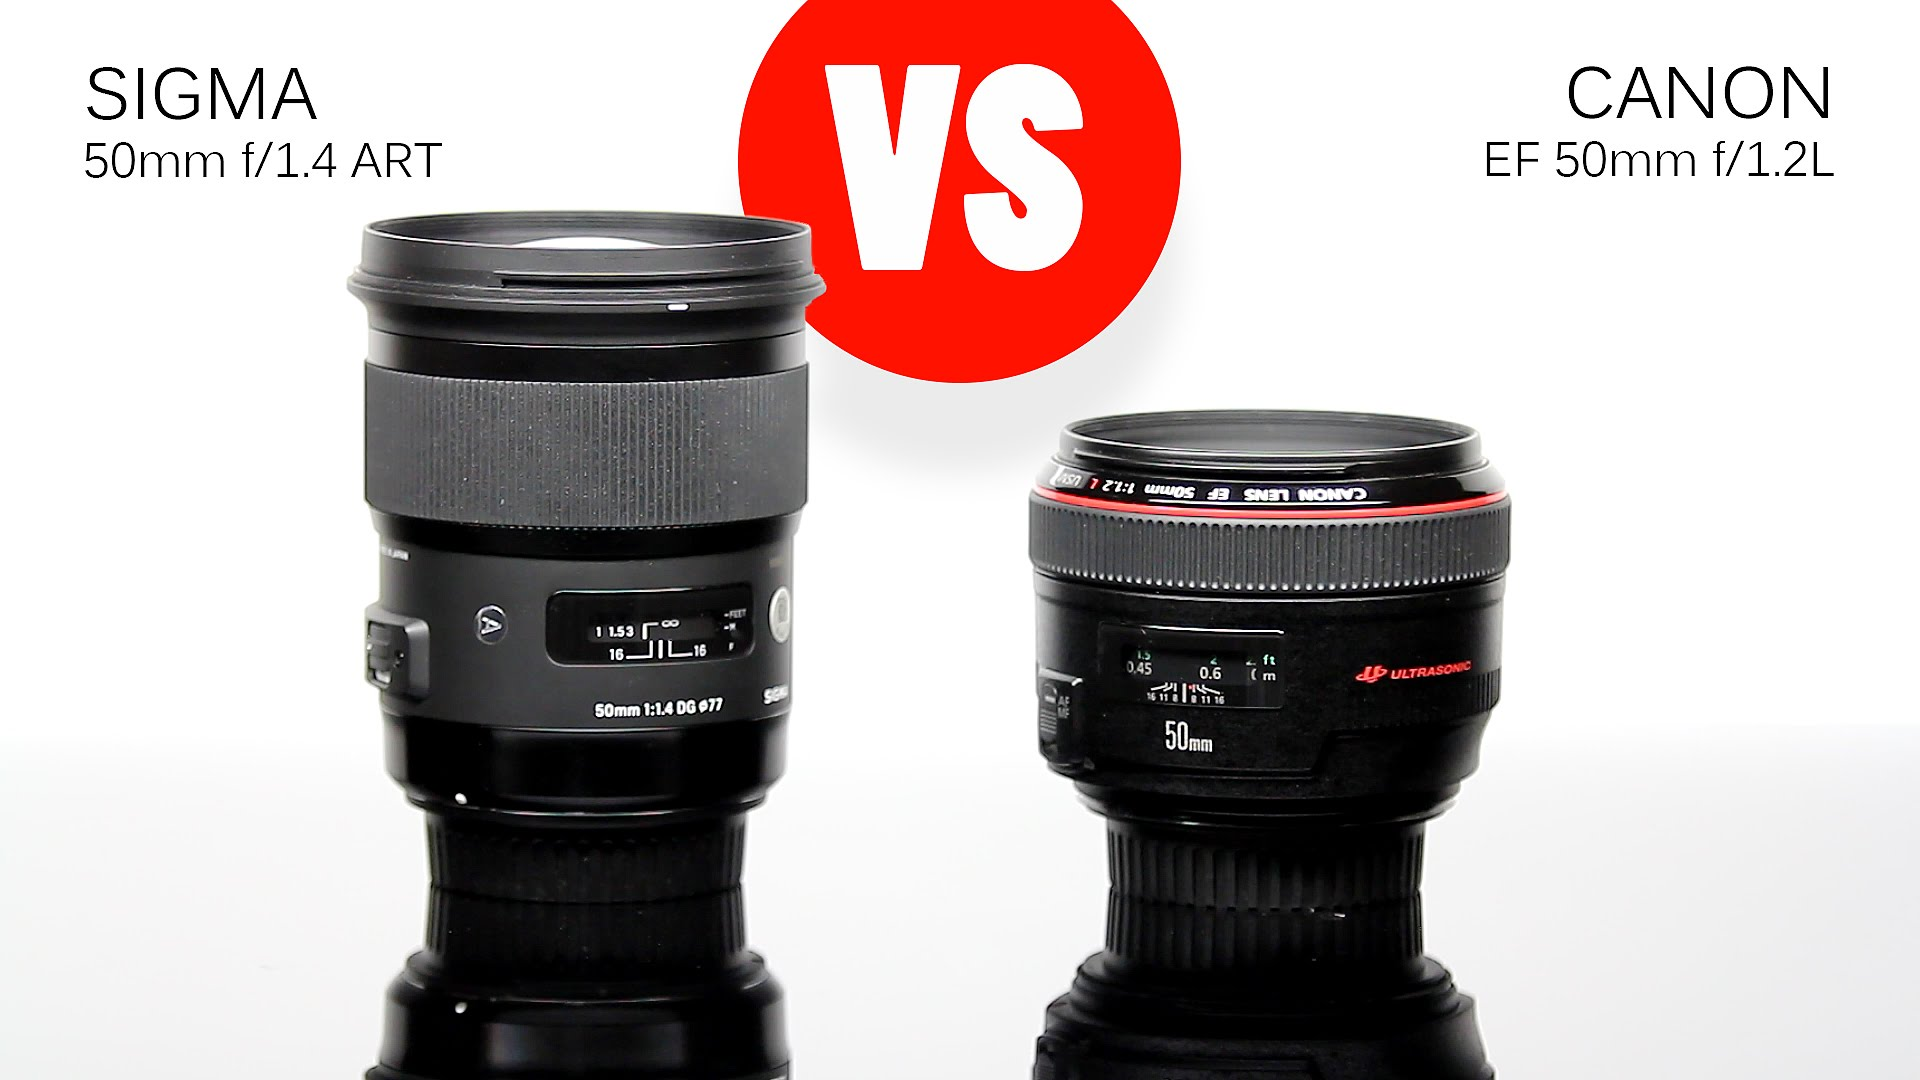 canon 50mm f 1 2l vs the sigma 50mm f 1 4 art lensvid. Black Bedroom Furniture Sets. Home Design Ideas